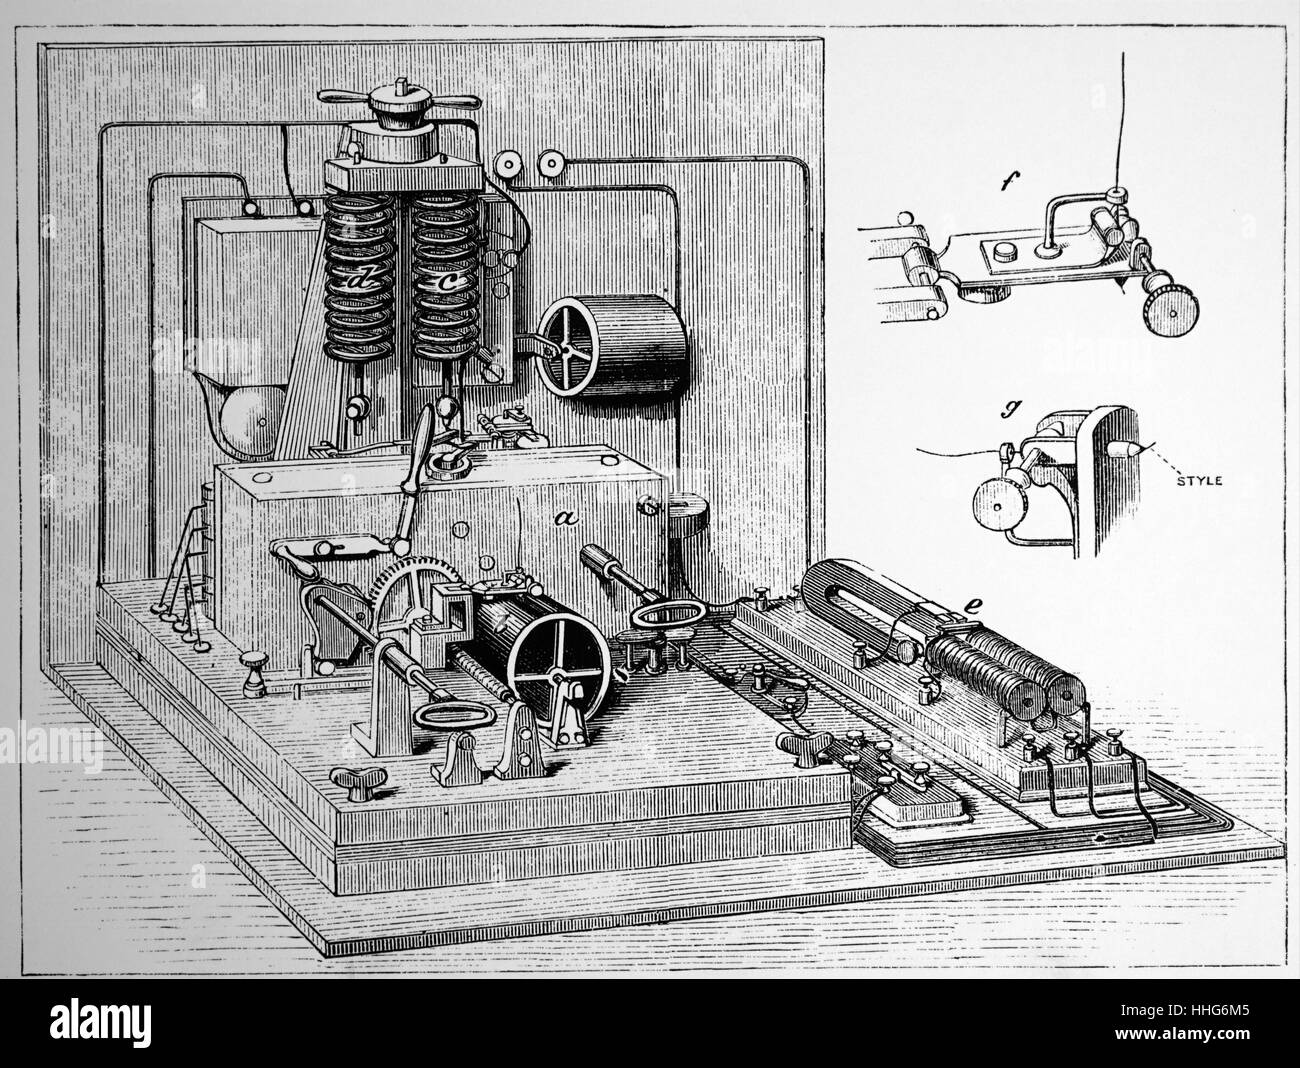 D'Asrlincourt's teleprinter. 1878. - Stock Image